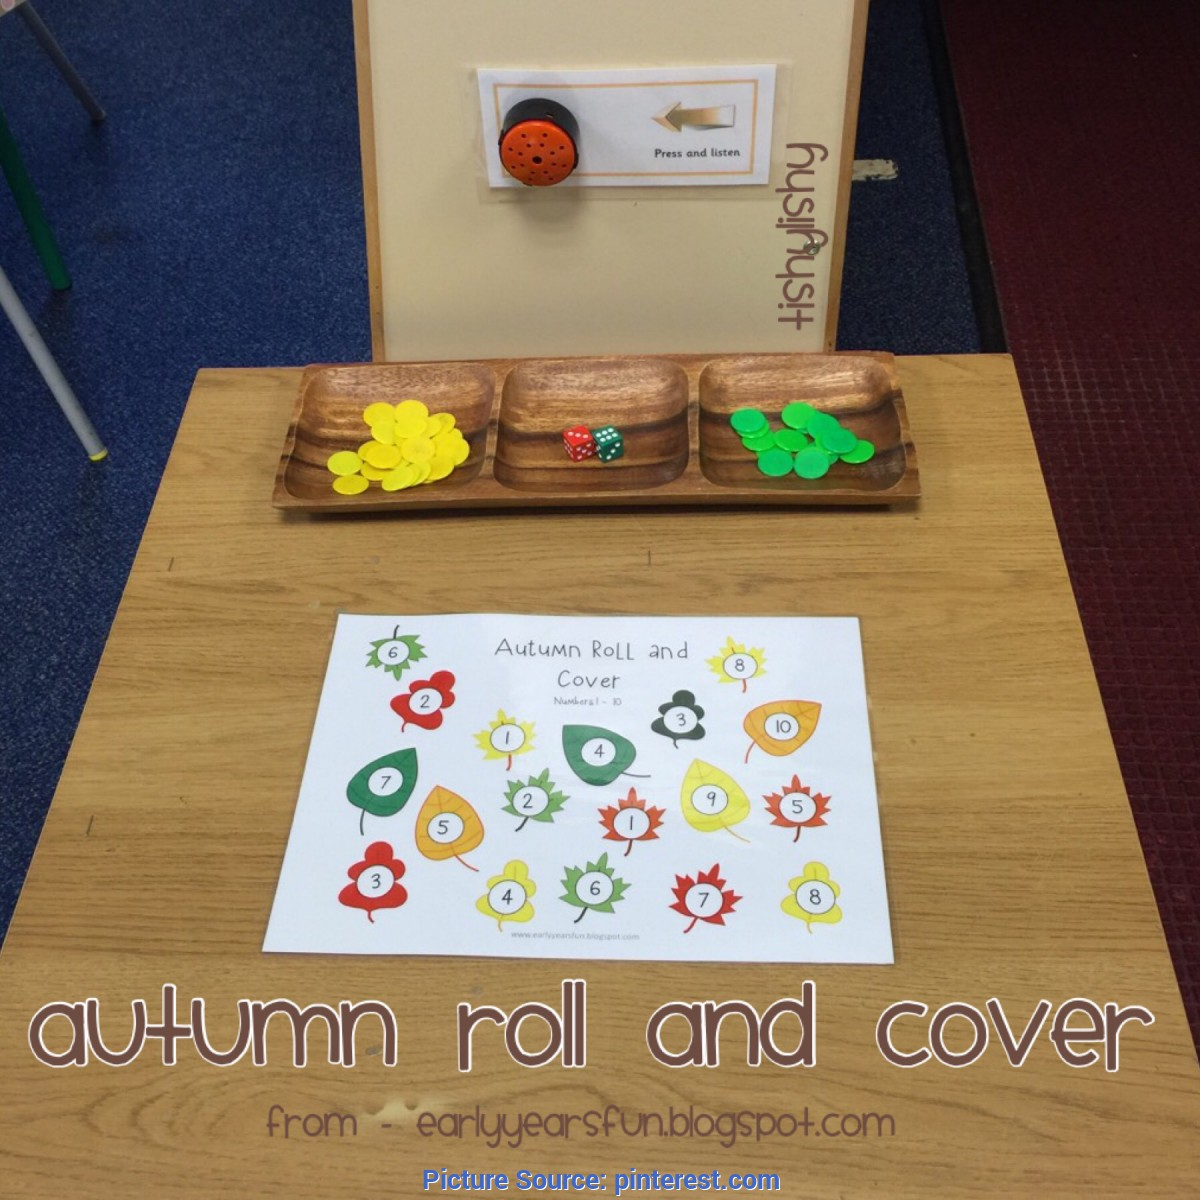 Complex Autumn Literacy Activities Early Years Autumn Roll And Write Game From Earlyyearsfun Blogspot Co Ota Tech